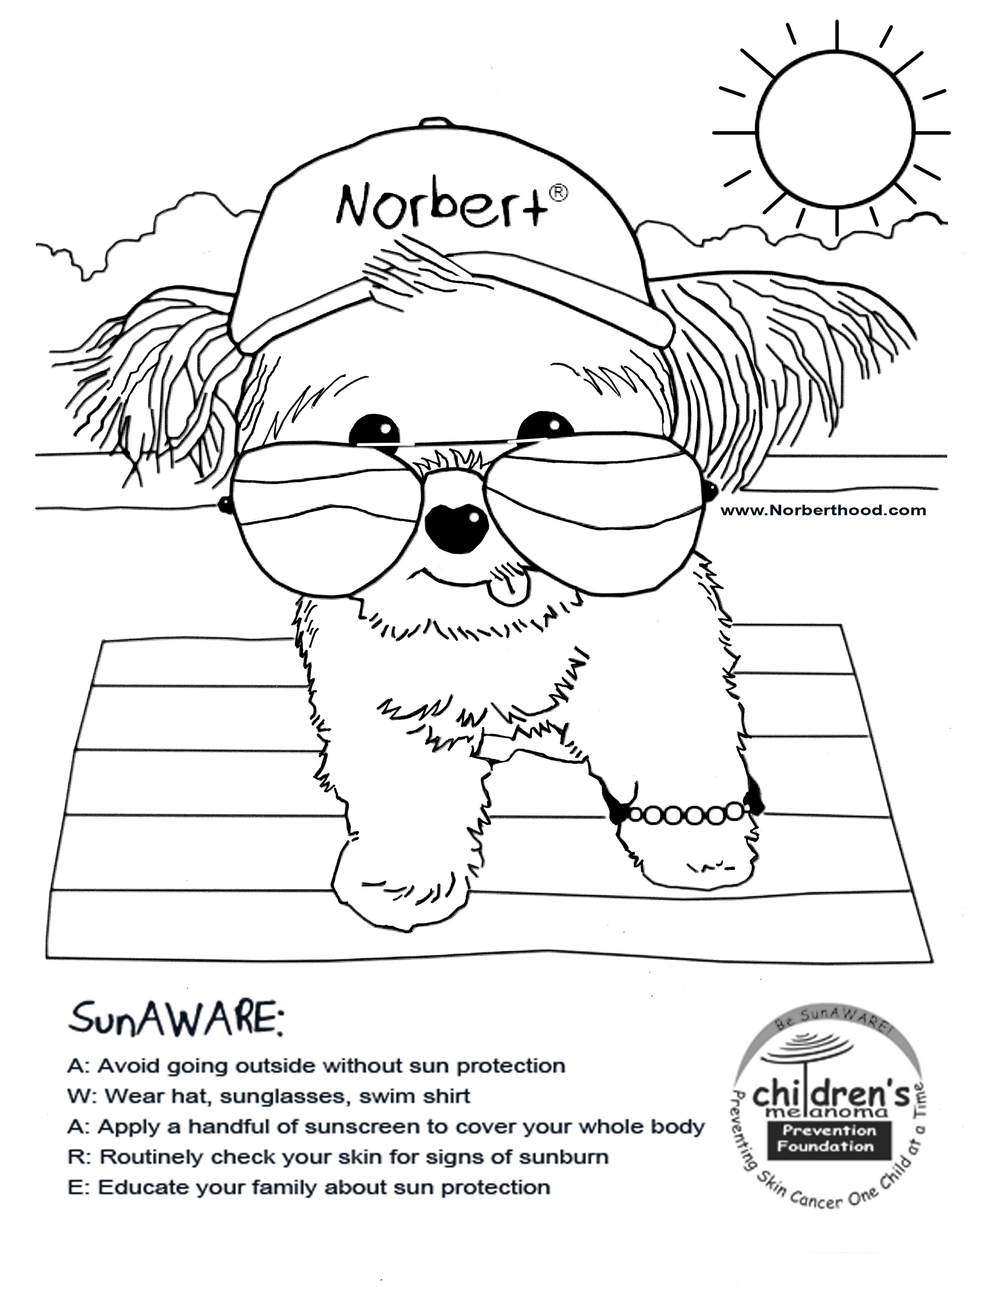 Final Norbert Coloring Page_SunAWARE.jpg